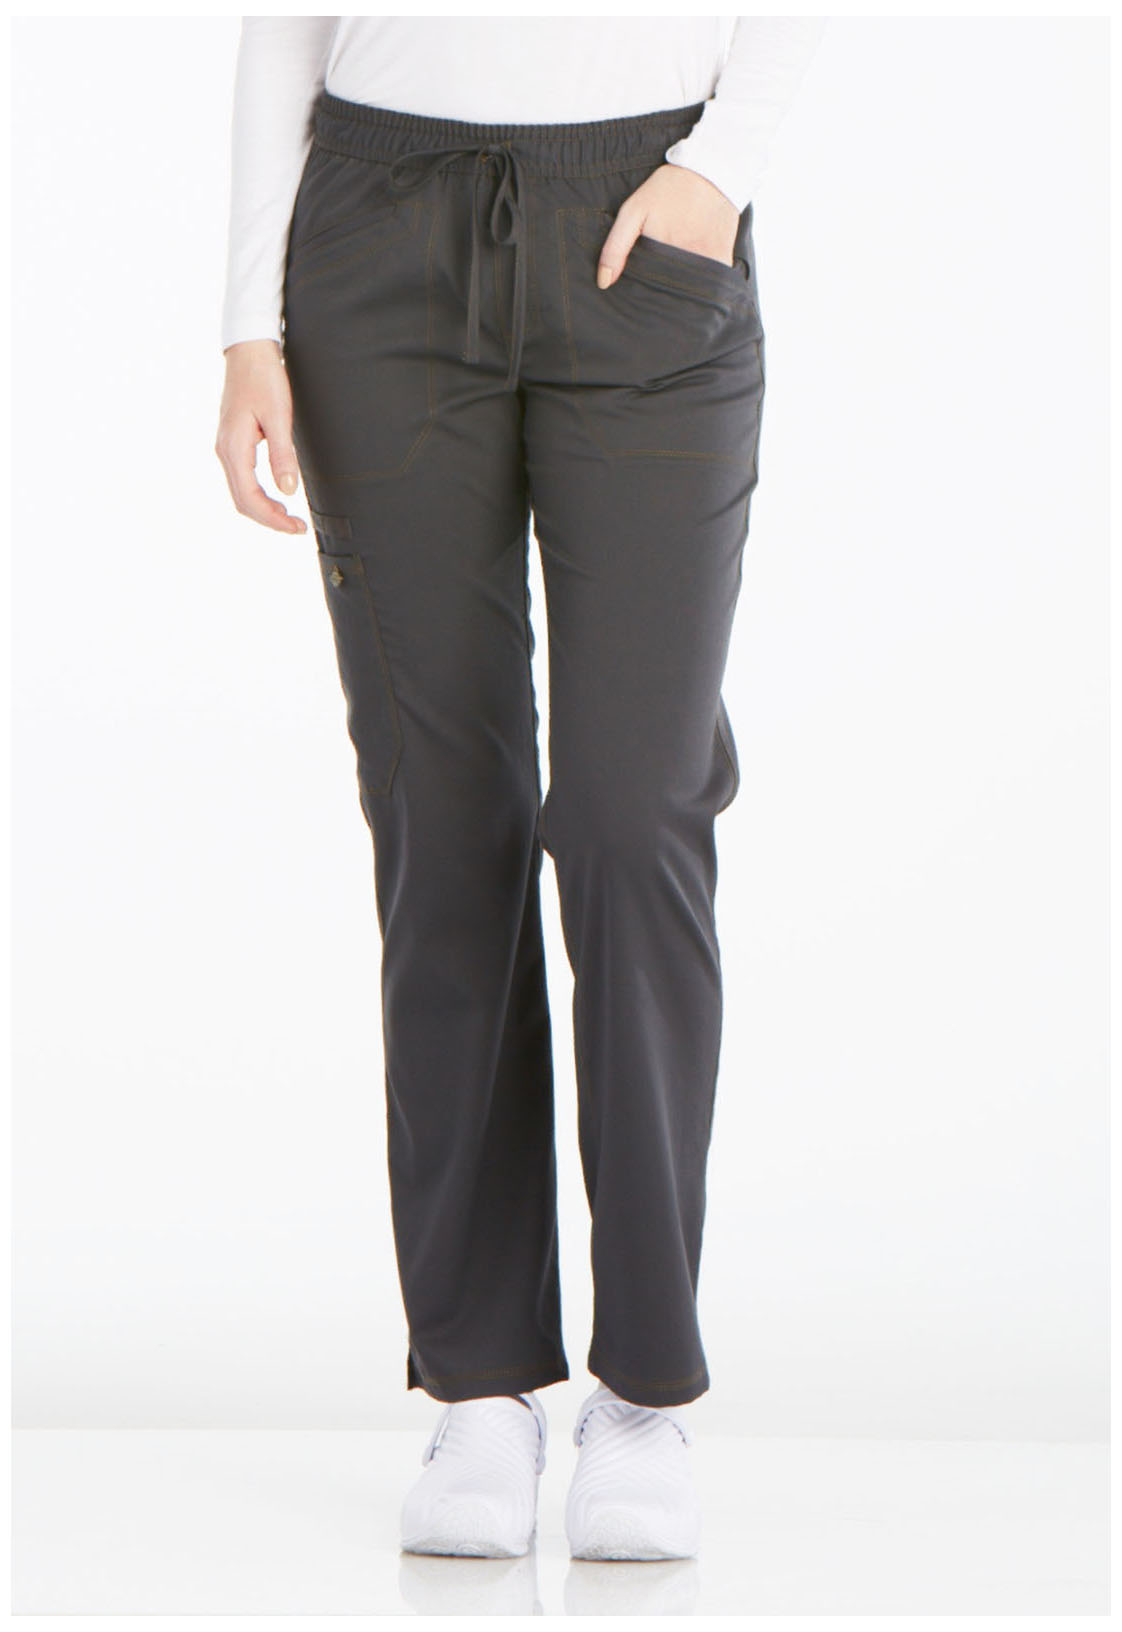 cc41ca3de93 Essence Mid Rise Straight Leg Drawstring Pant in Pewter DK106P-PWT ...